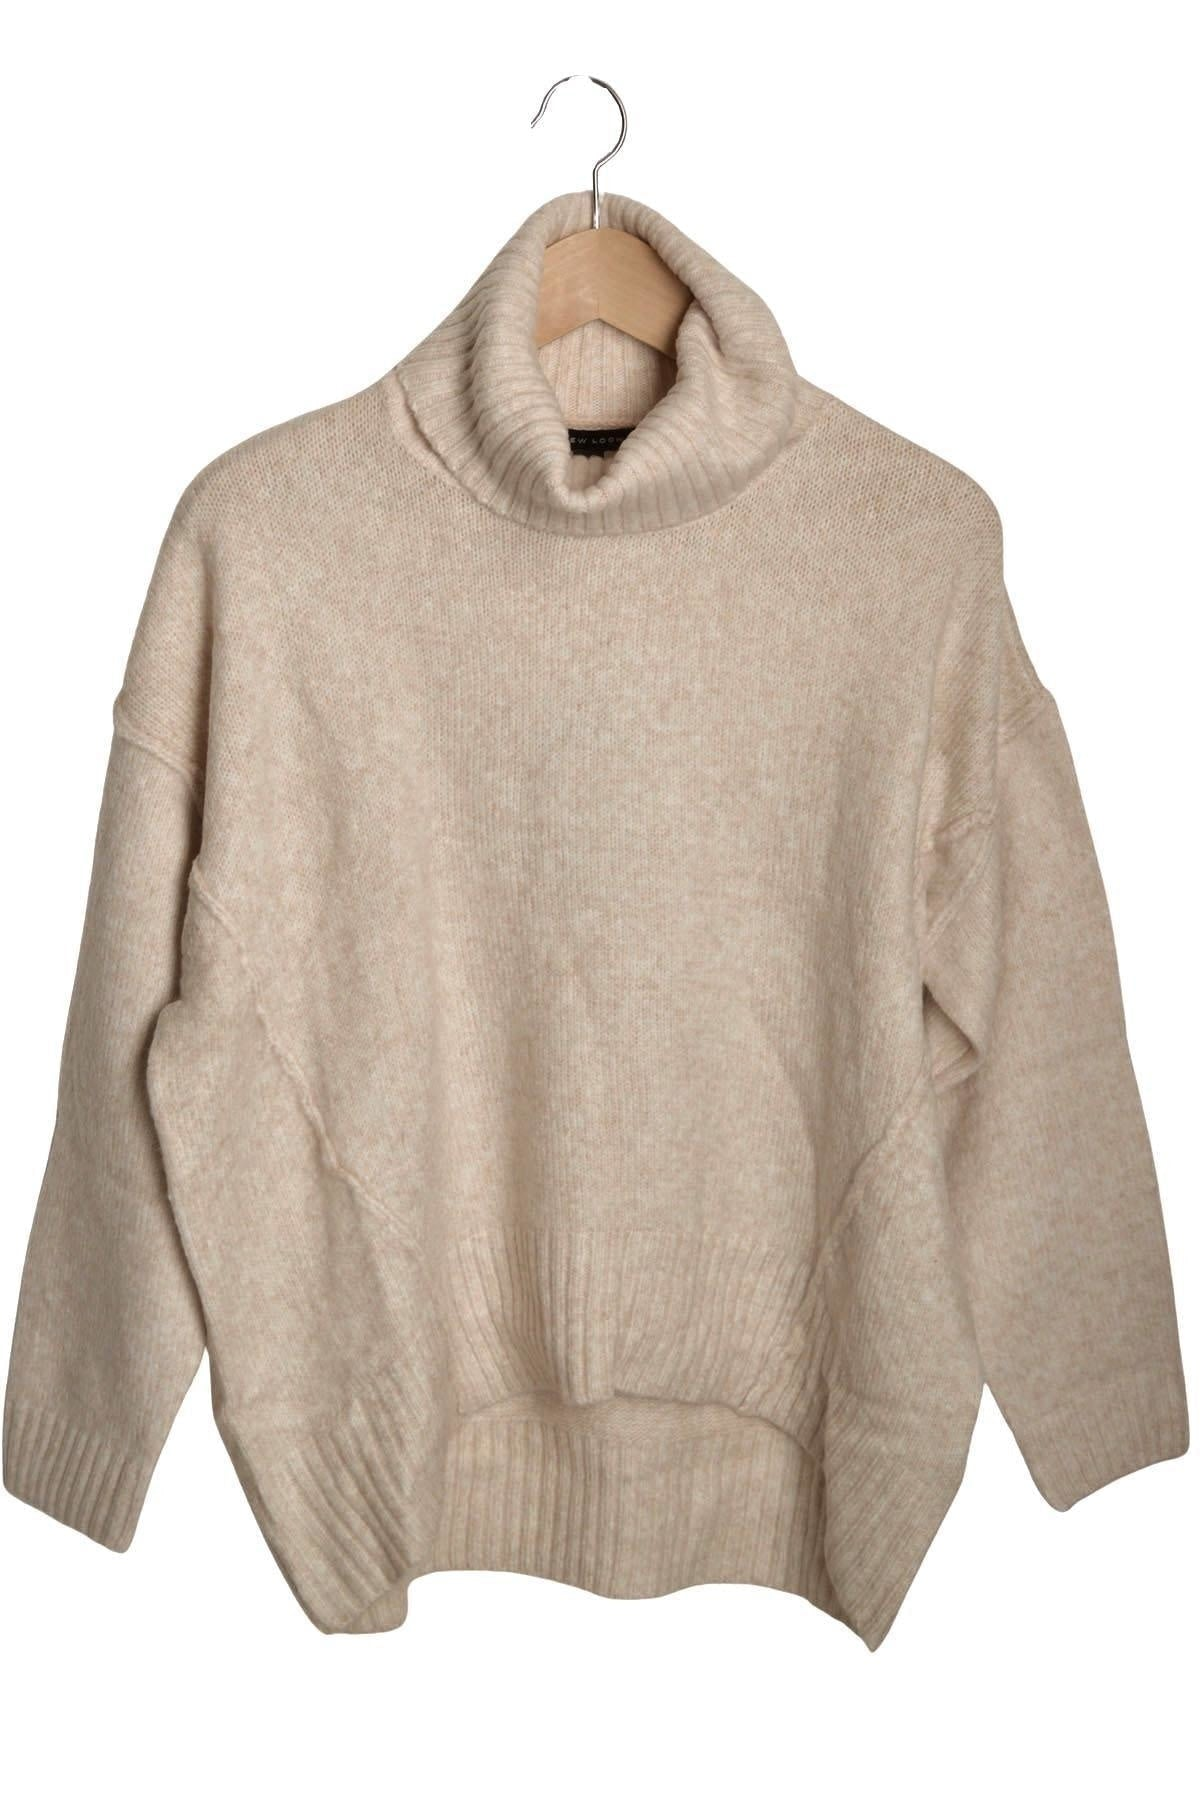 New Look Ex New Look Roll Neck Oversize Jumper | S / Beige Secret Label